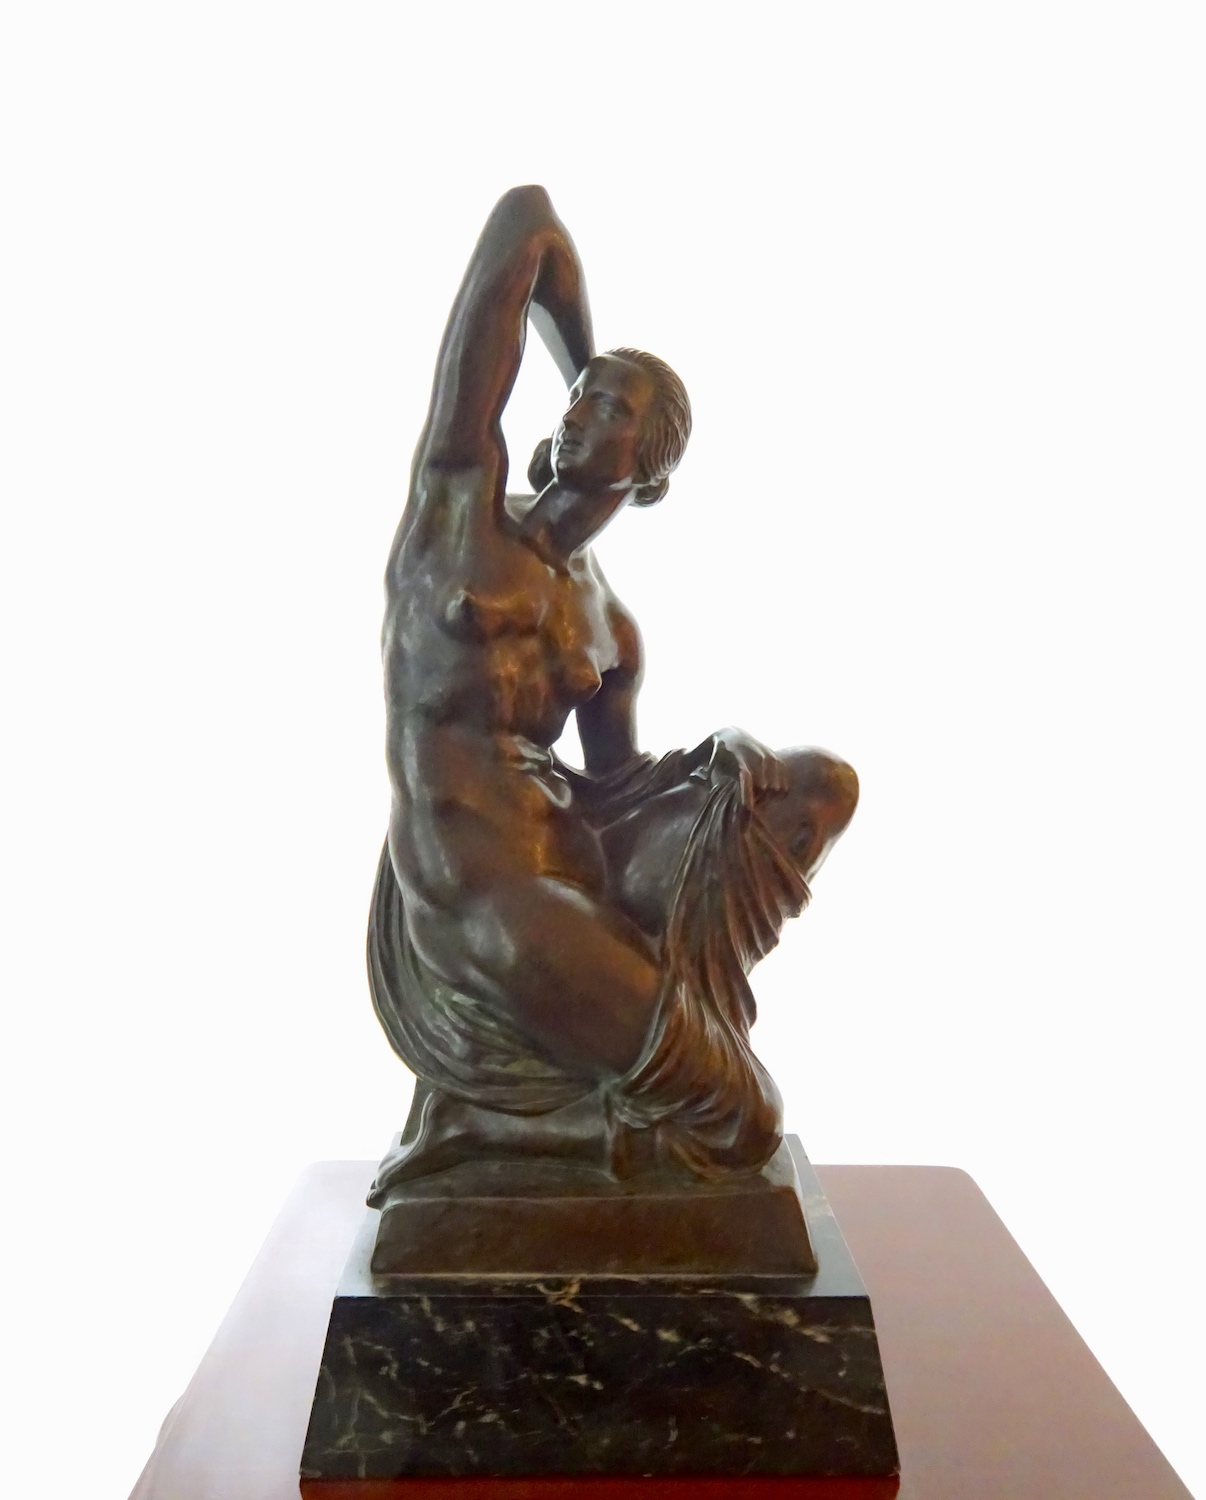 Joseph Cormier / Joe Descomps – Bronze statue on a marble socle